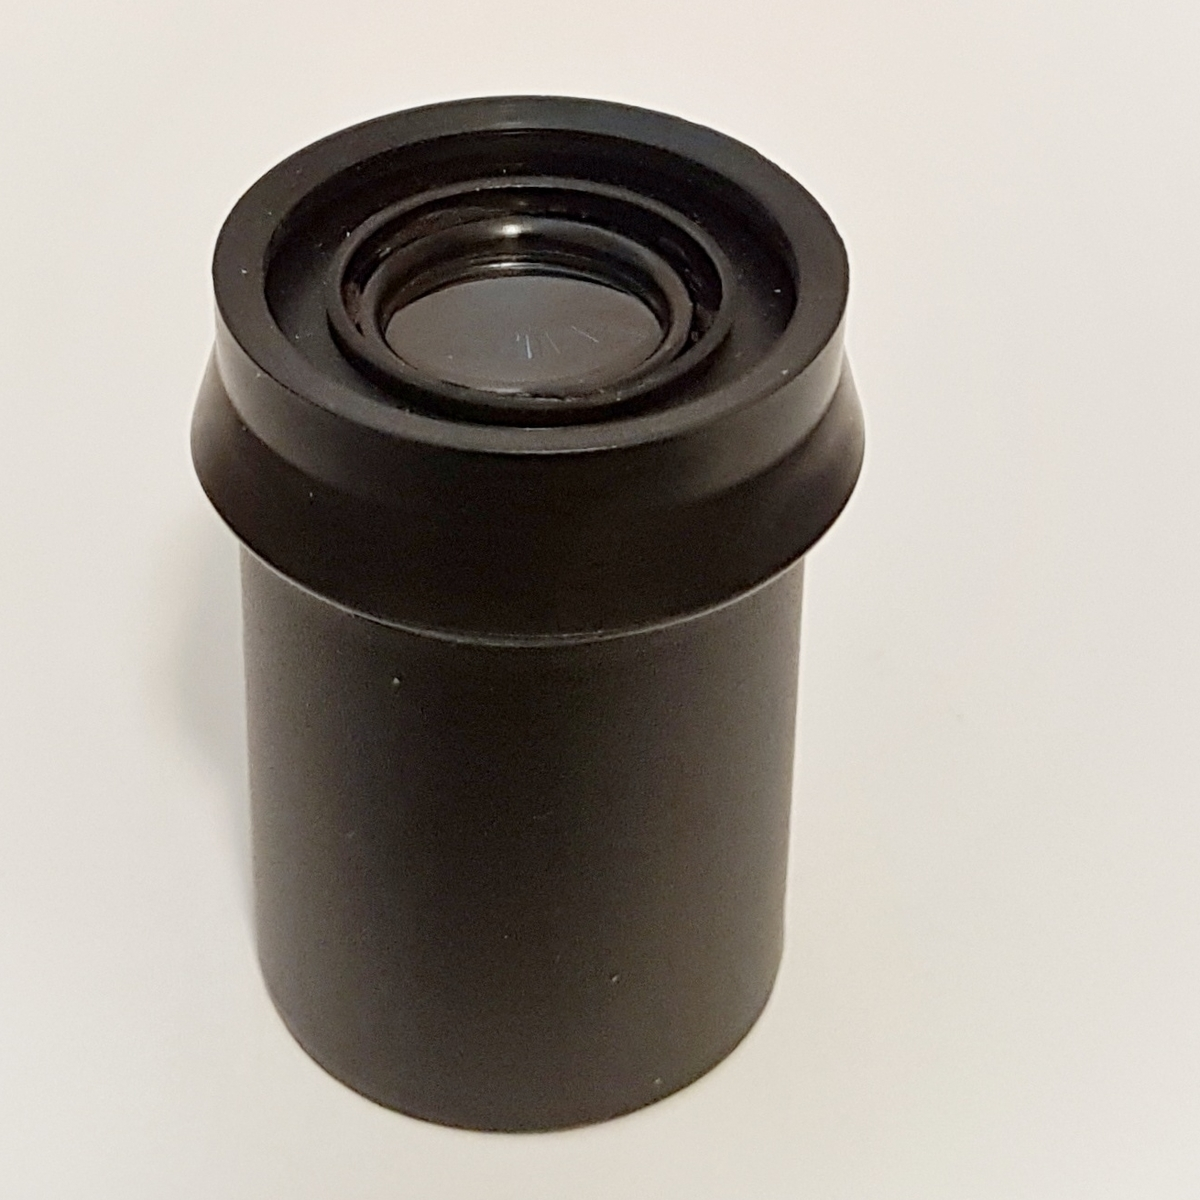 DIY 18mm Eyepiece